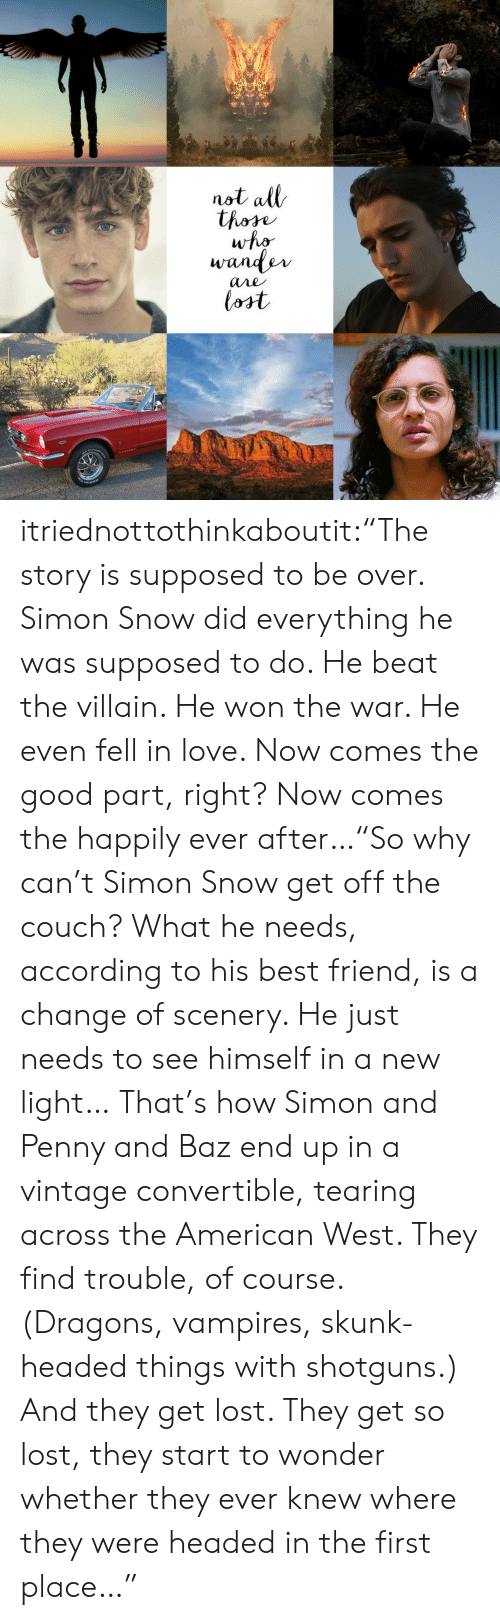 """Ever After: not all  thore  who  wander  ane  lost itriednottothinkaboutit:""""The story is supposed to be over. Simon Snow did everything he was supposed to do. He beat the villain. He won the war. He even fell in love. Now comes the good part, right? Now comes the happily ever after…""""So why can't Simon Snow get off the couch? What he needs, according to his best friend, is a change of scenery. He just needs to see himself in a new light… That's how Simon and Penny and Baz end up in a vintage convertible, tearing across the American West. They find trouble, of course. (Dragons, vampires, skunk-headed things with shotguns.) And they get lost. They get so lost, they start to wonder whether they ever knew where they were headed in the first place…"""""""